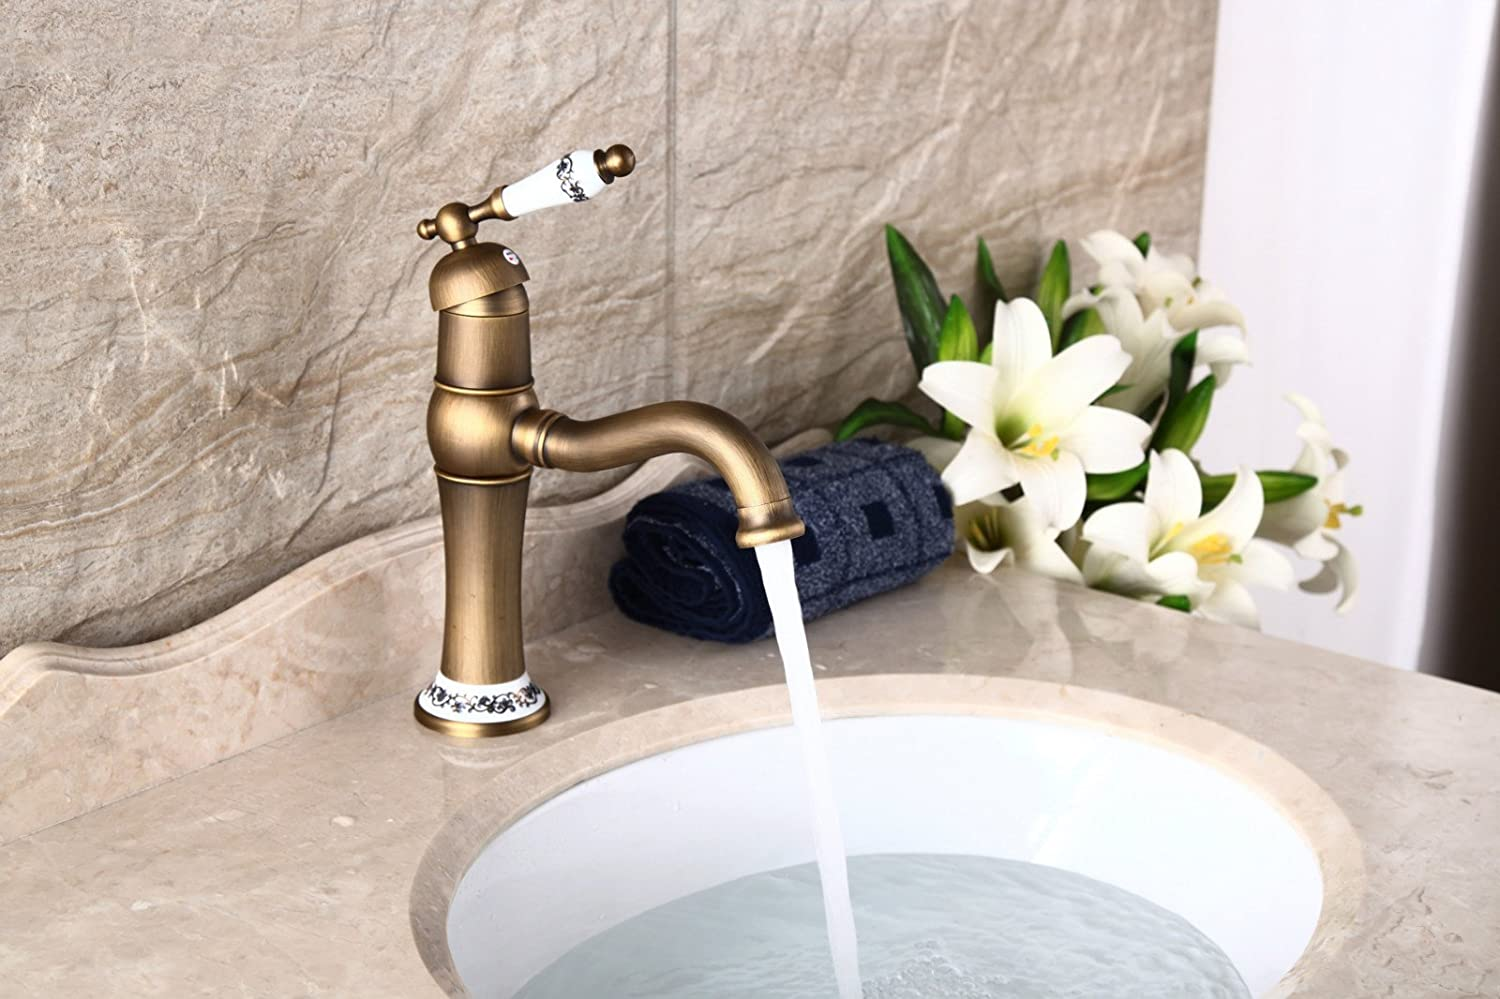 MIAORUI Antique faucet, hot and cold copper, European style bathroom, counter basin, ceramic basin, bathroom faucet